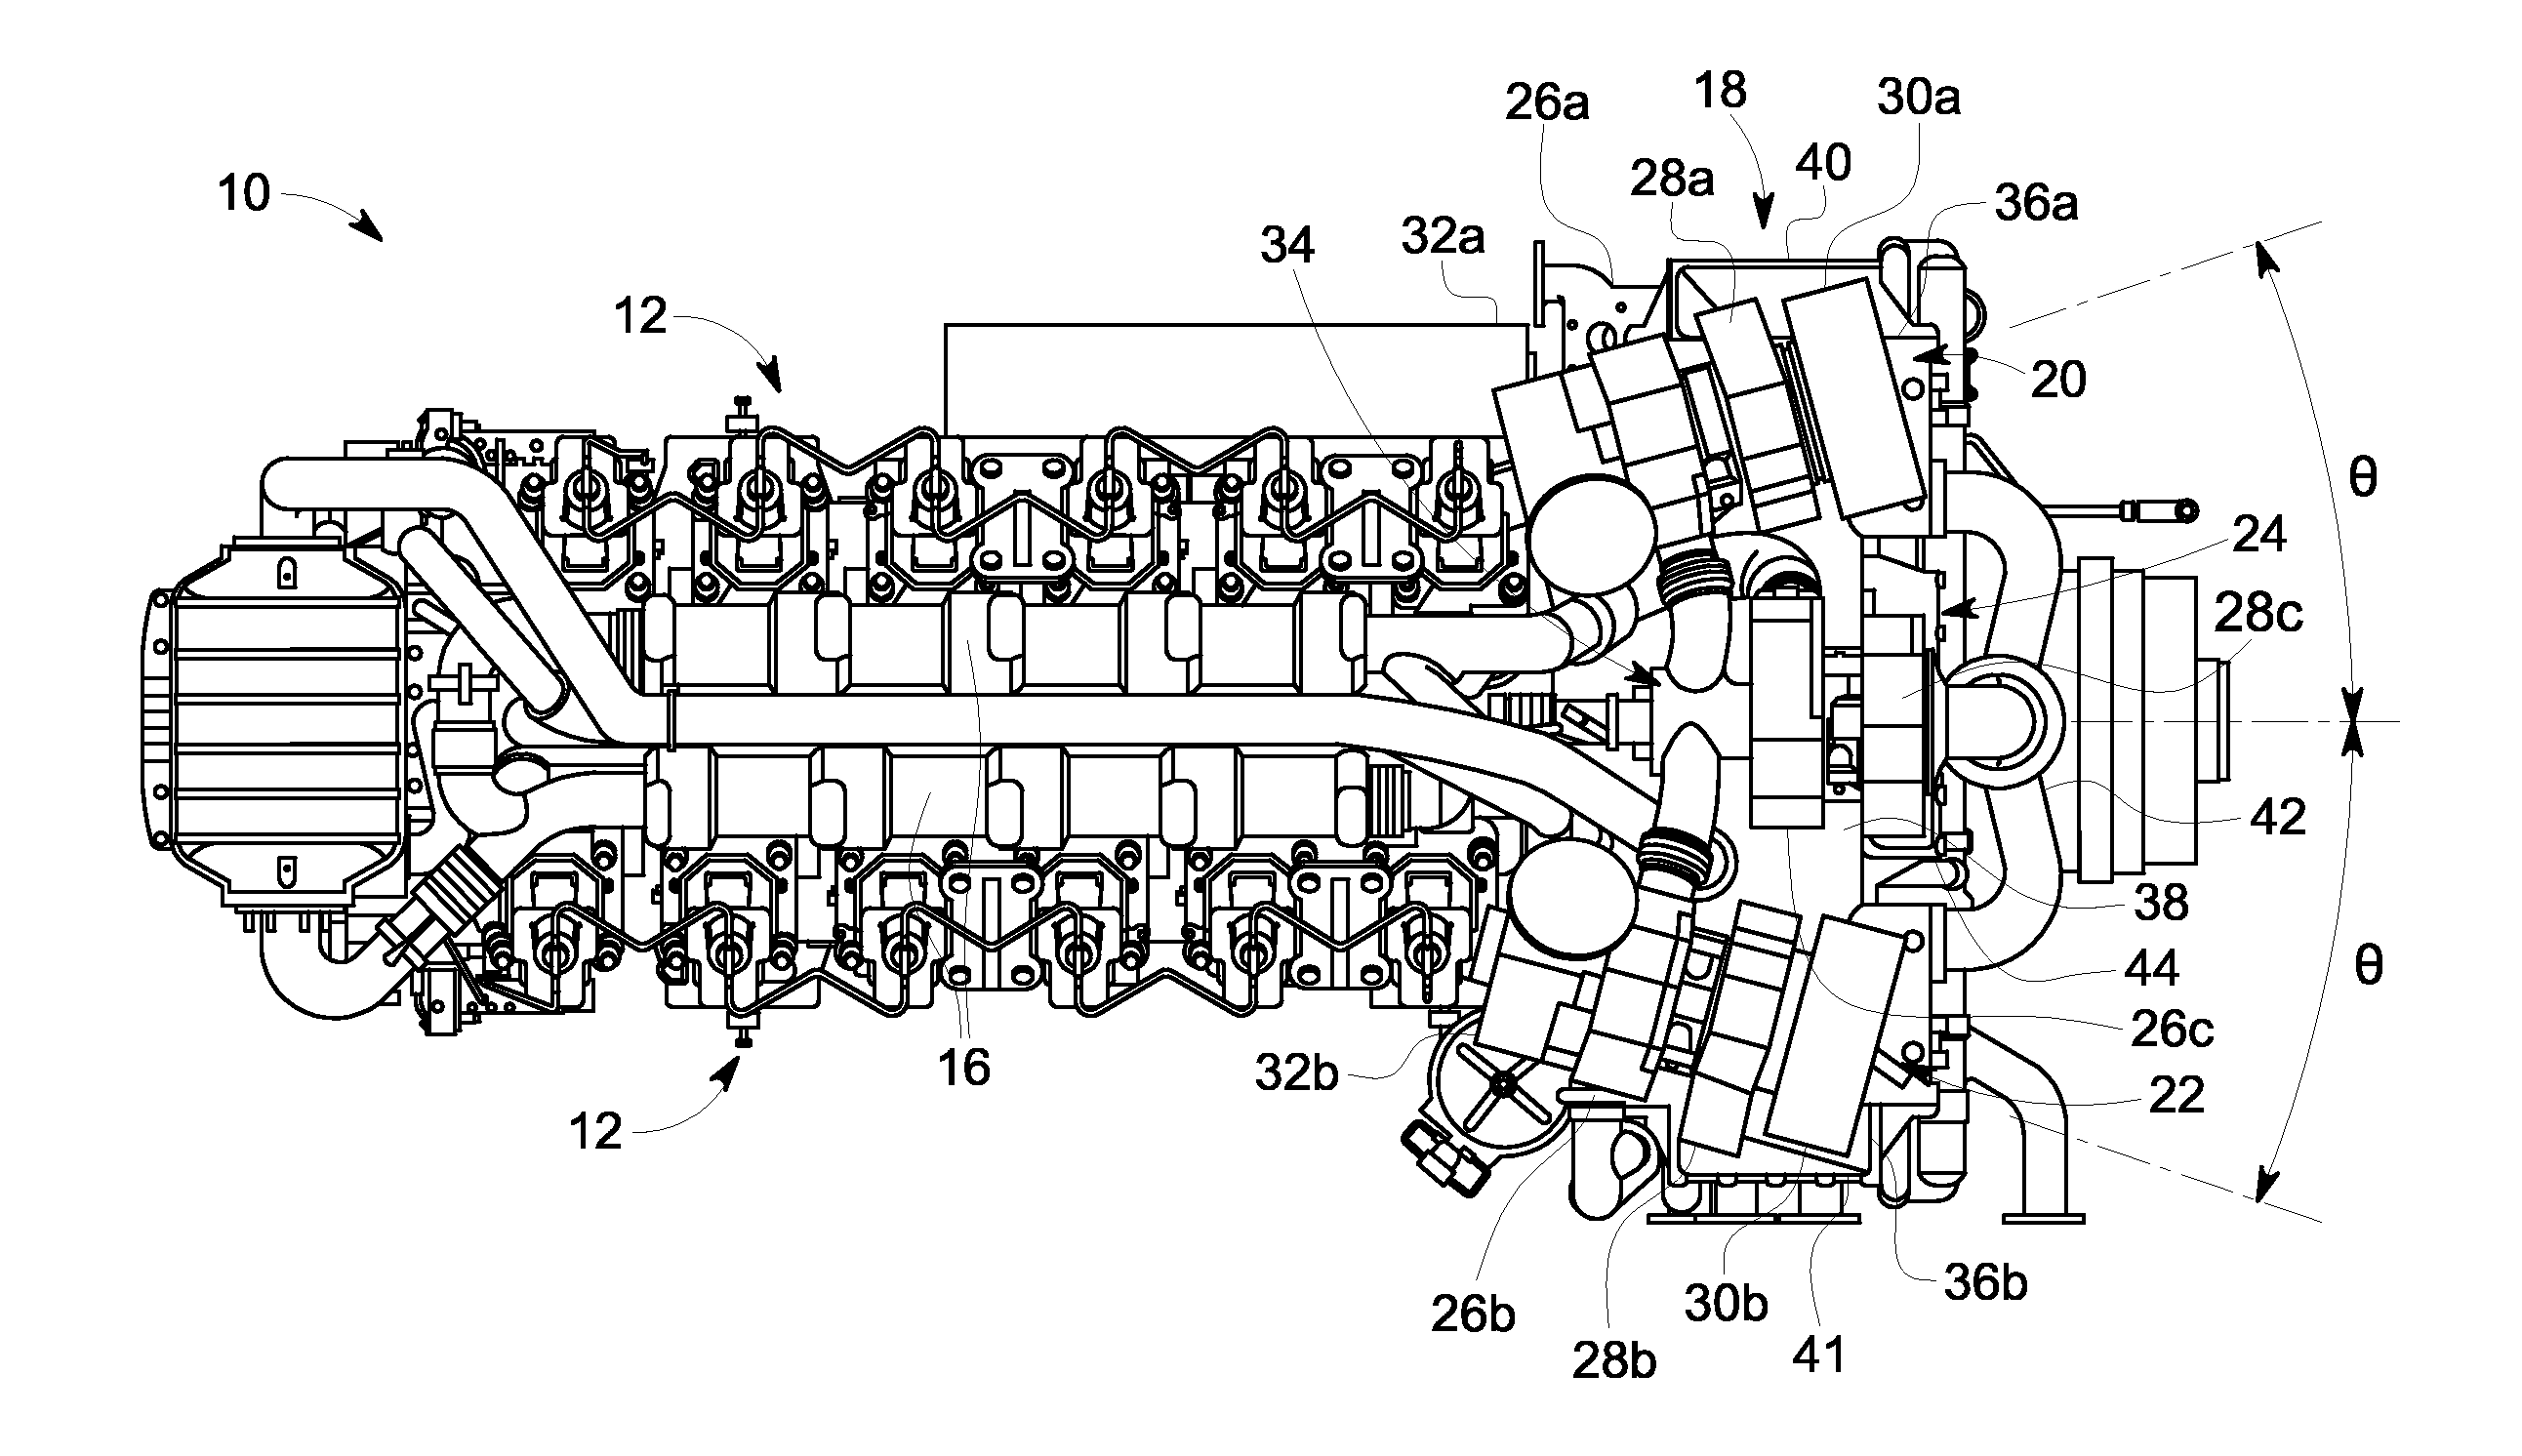 Patent Us20140182285 Charge Air Cooler Cover And Turbocharger 2005 Dodge Stratus Engine Diagram Drawing